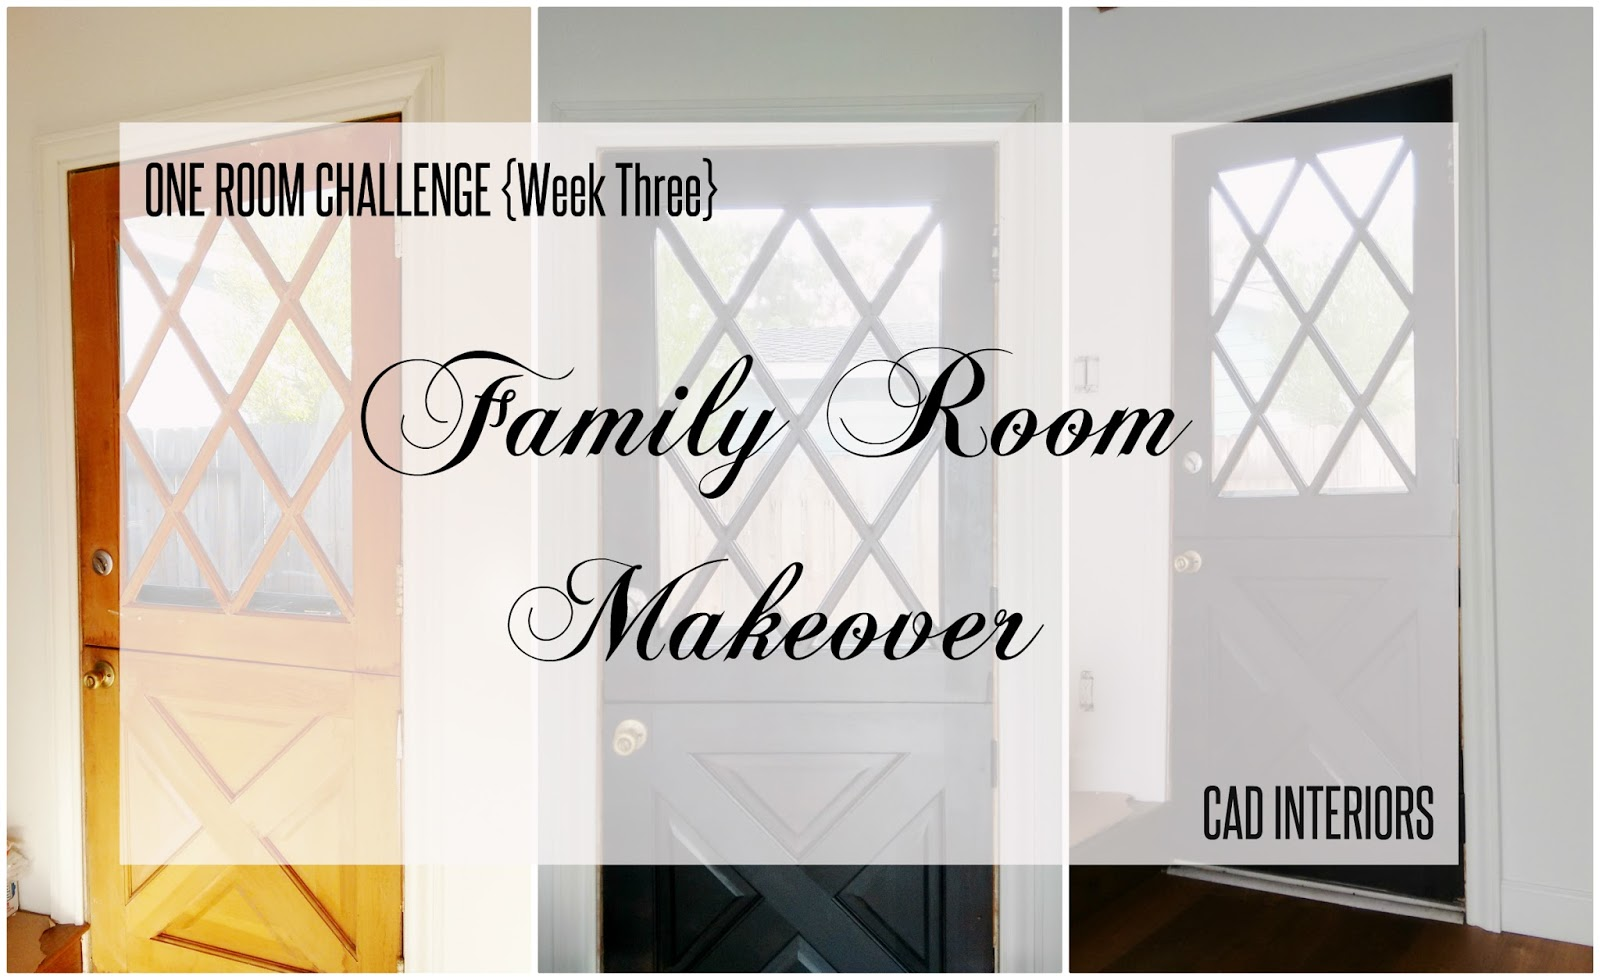 CAD INTERIORS family room remodel dutch door refinishing DIY project home improvement ORC